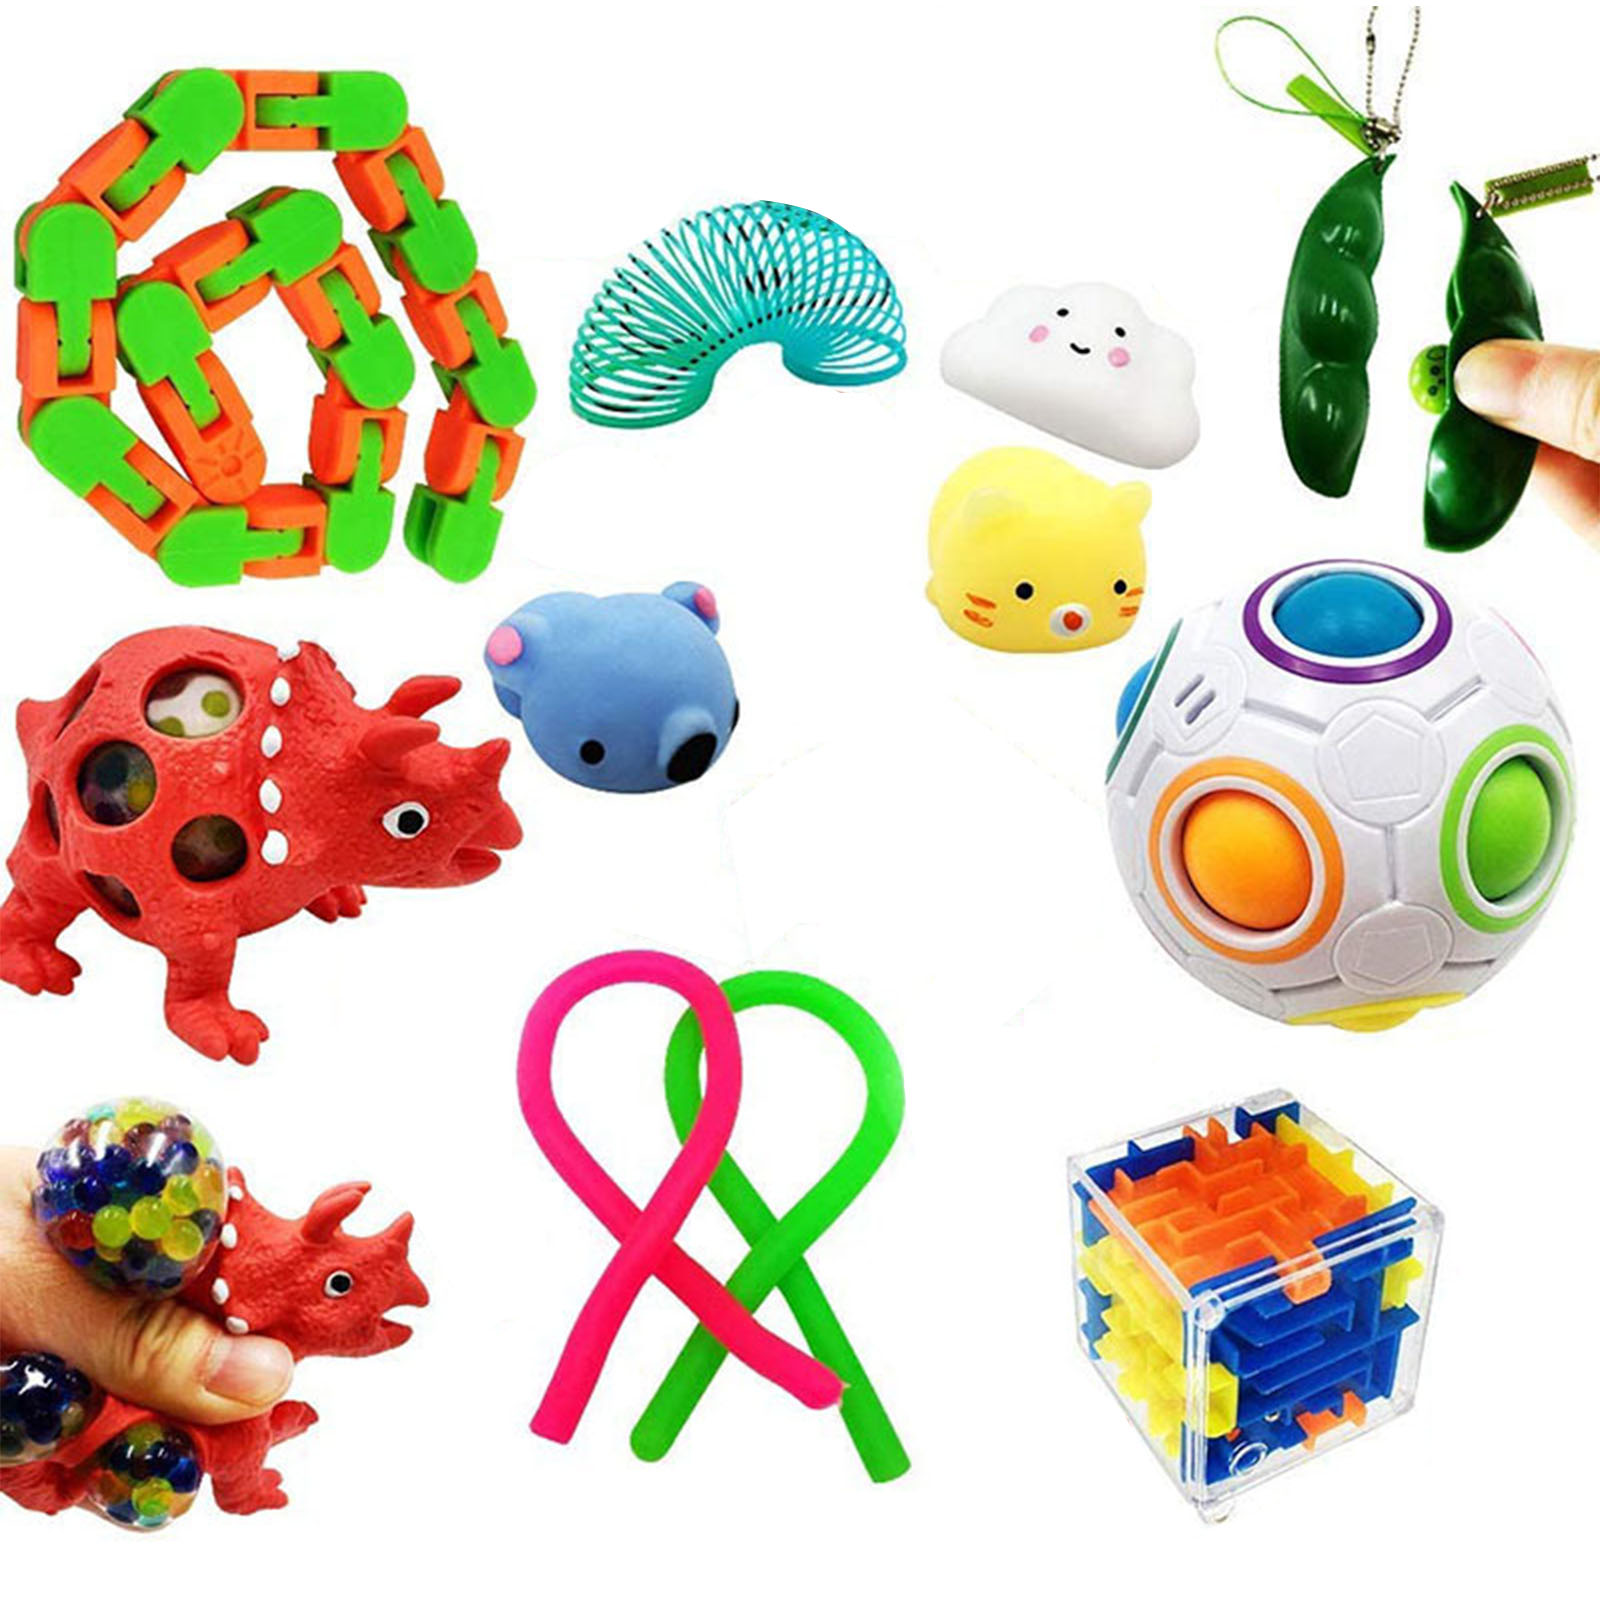 8pcs Carrot Squeeze Toy Carrot Shape Cute Stress Reliever Vent Toys for Kids